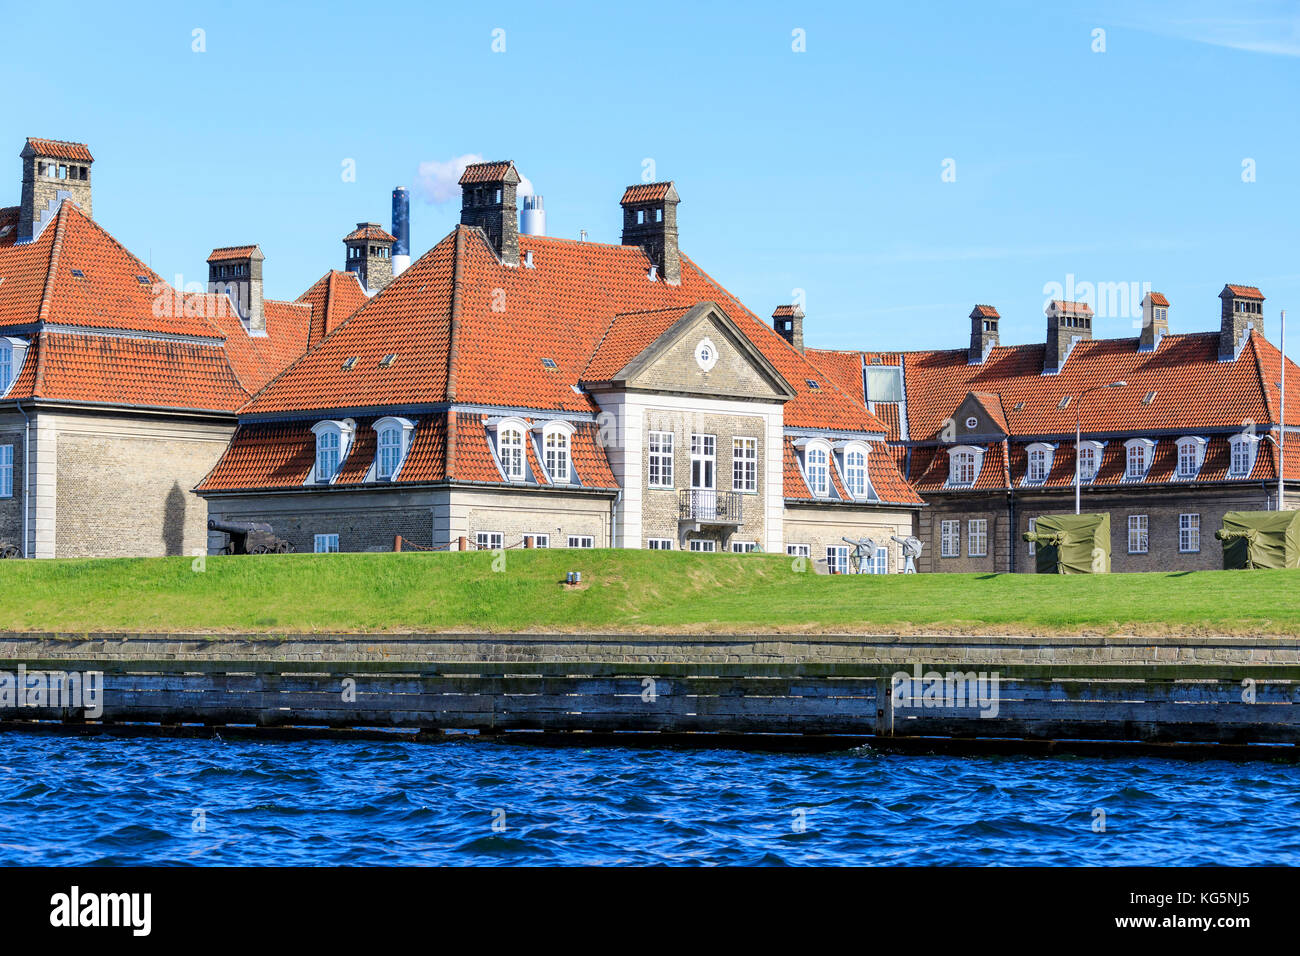 Typical houses of residential area seen from a boat trip along the canals of Copenhagen, Denmark - Stock Image